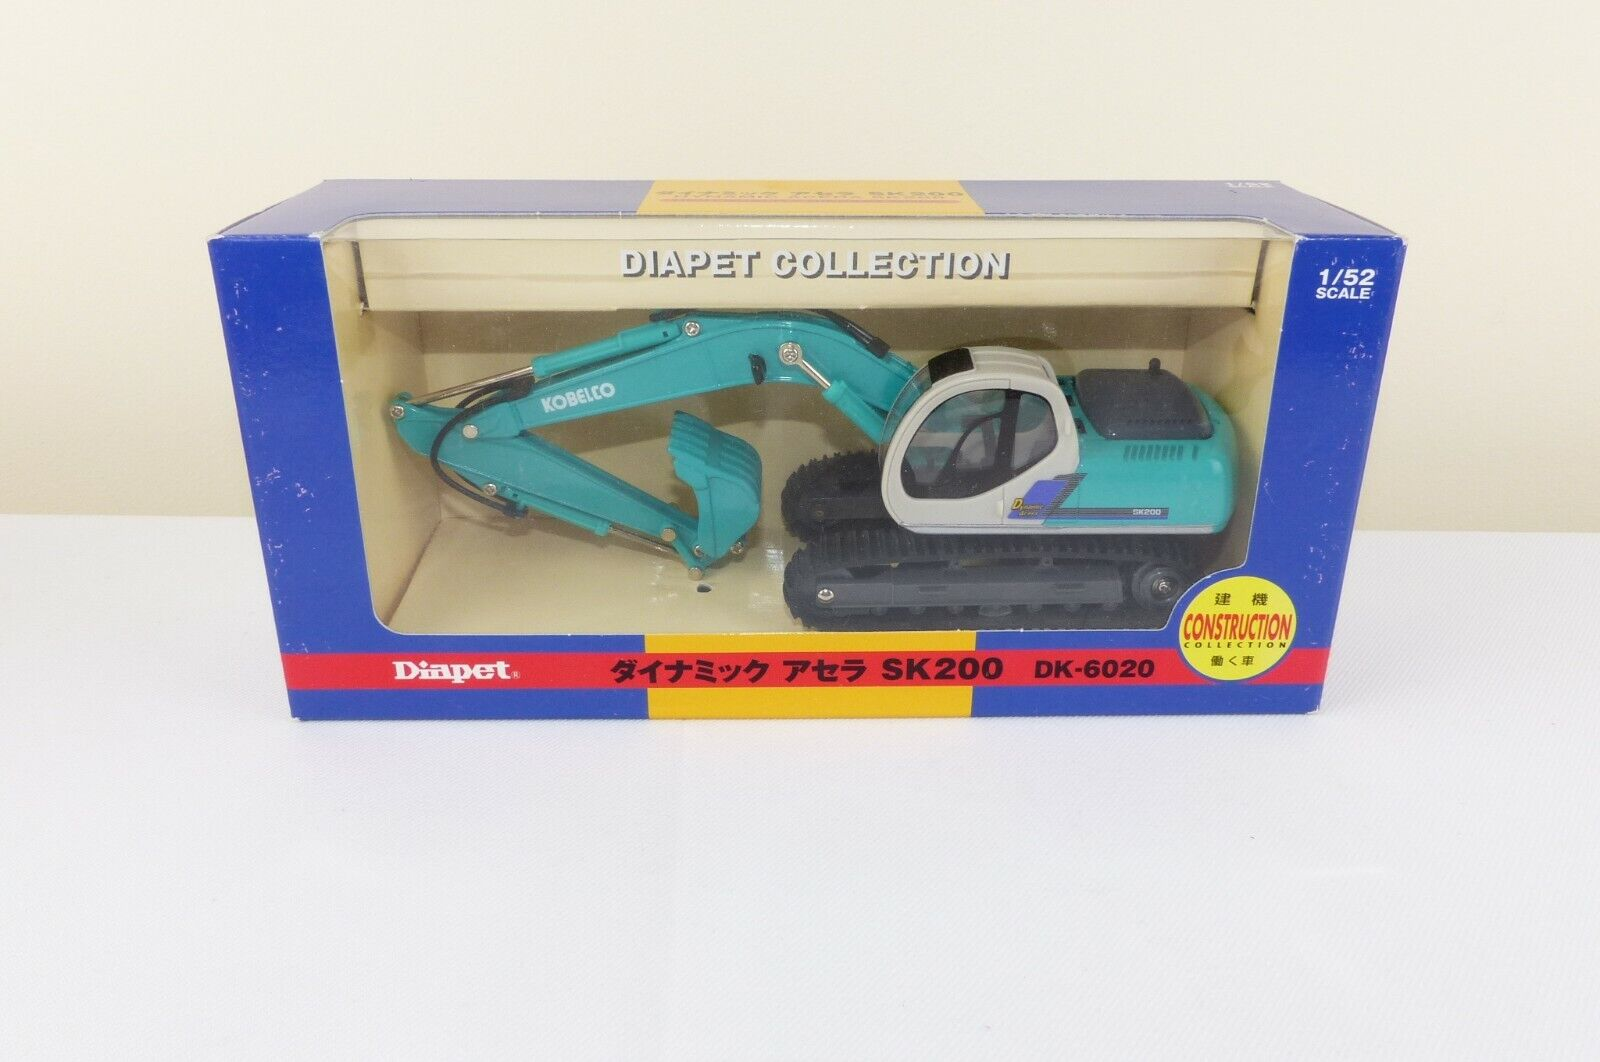 Diapet 1.52 scale model of the Kobelco SK 200 excavator VNMB